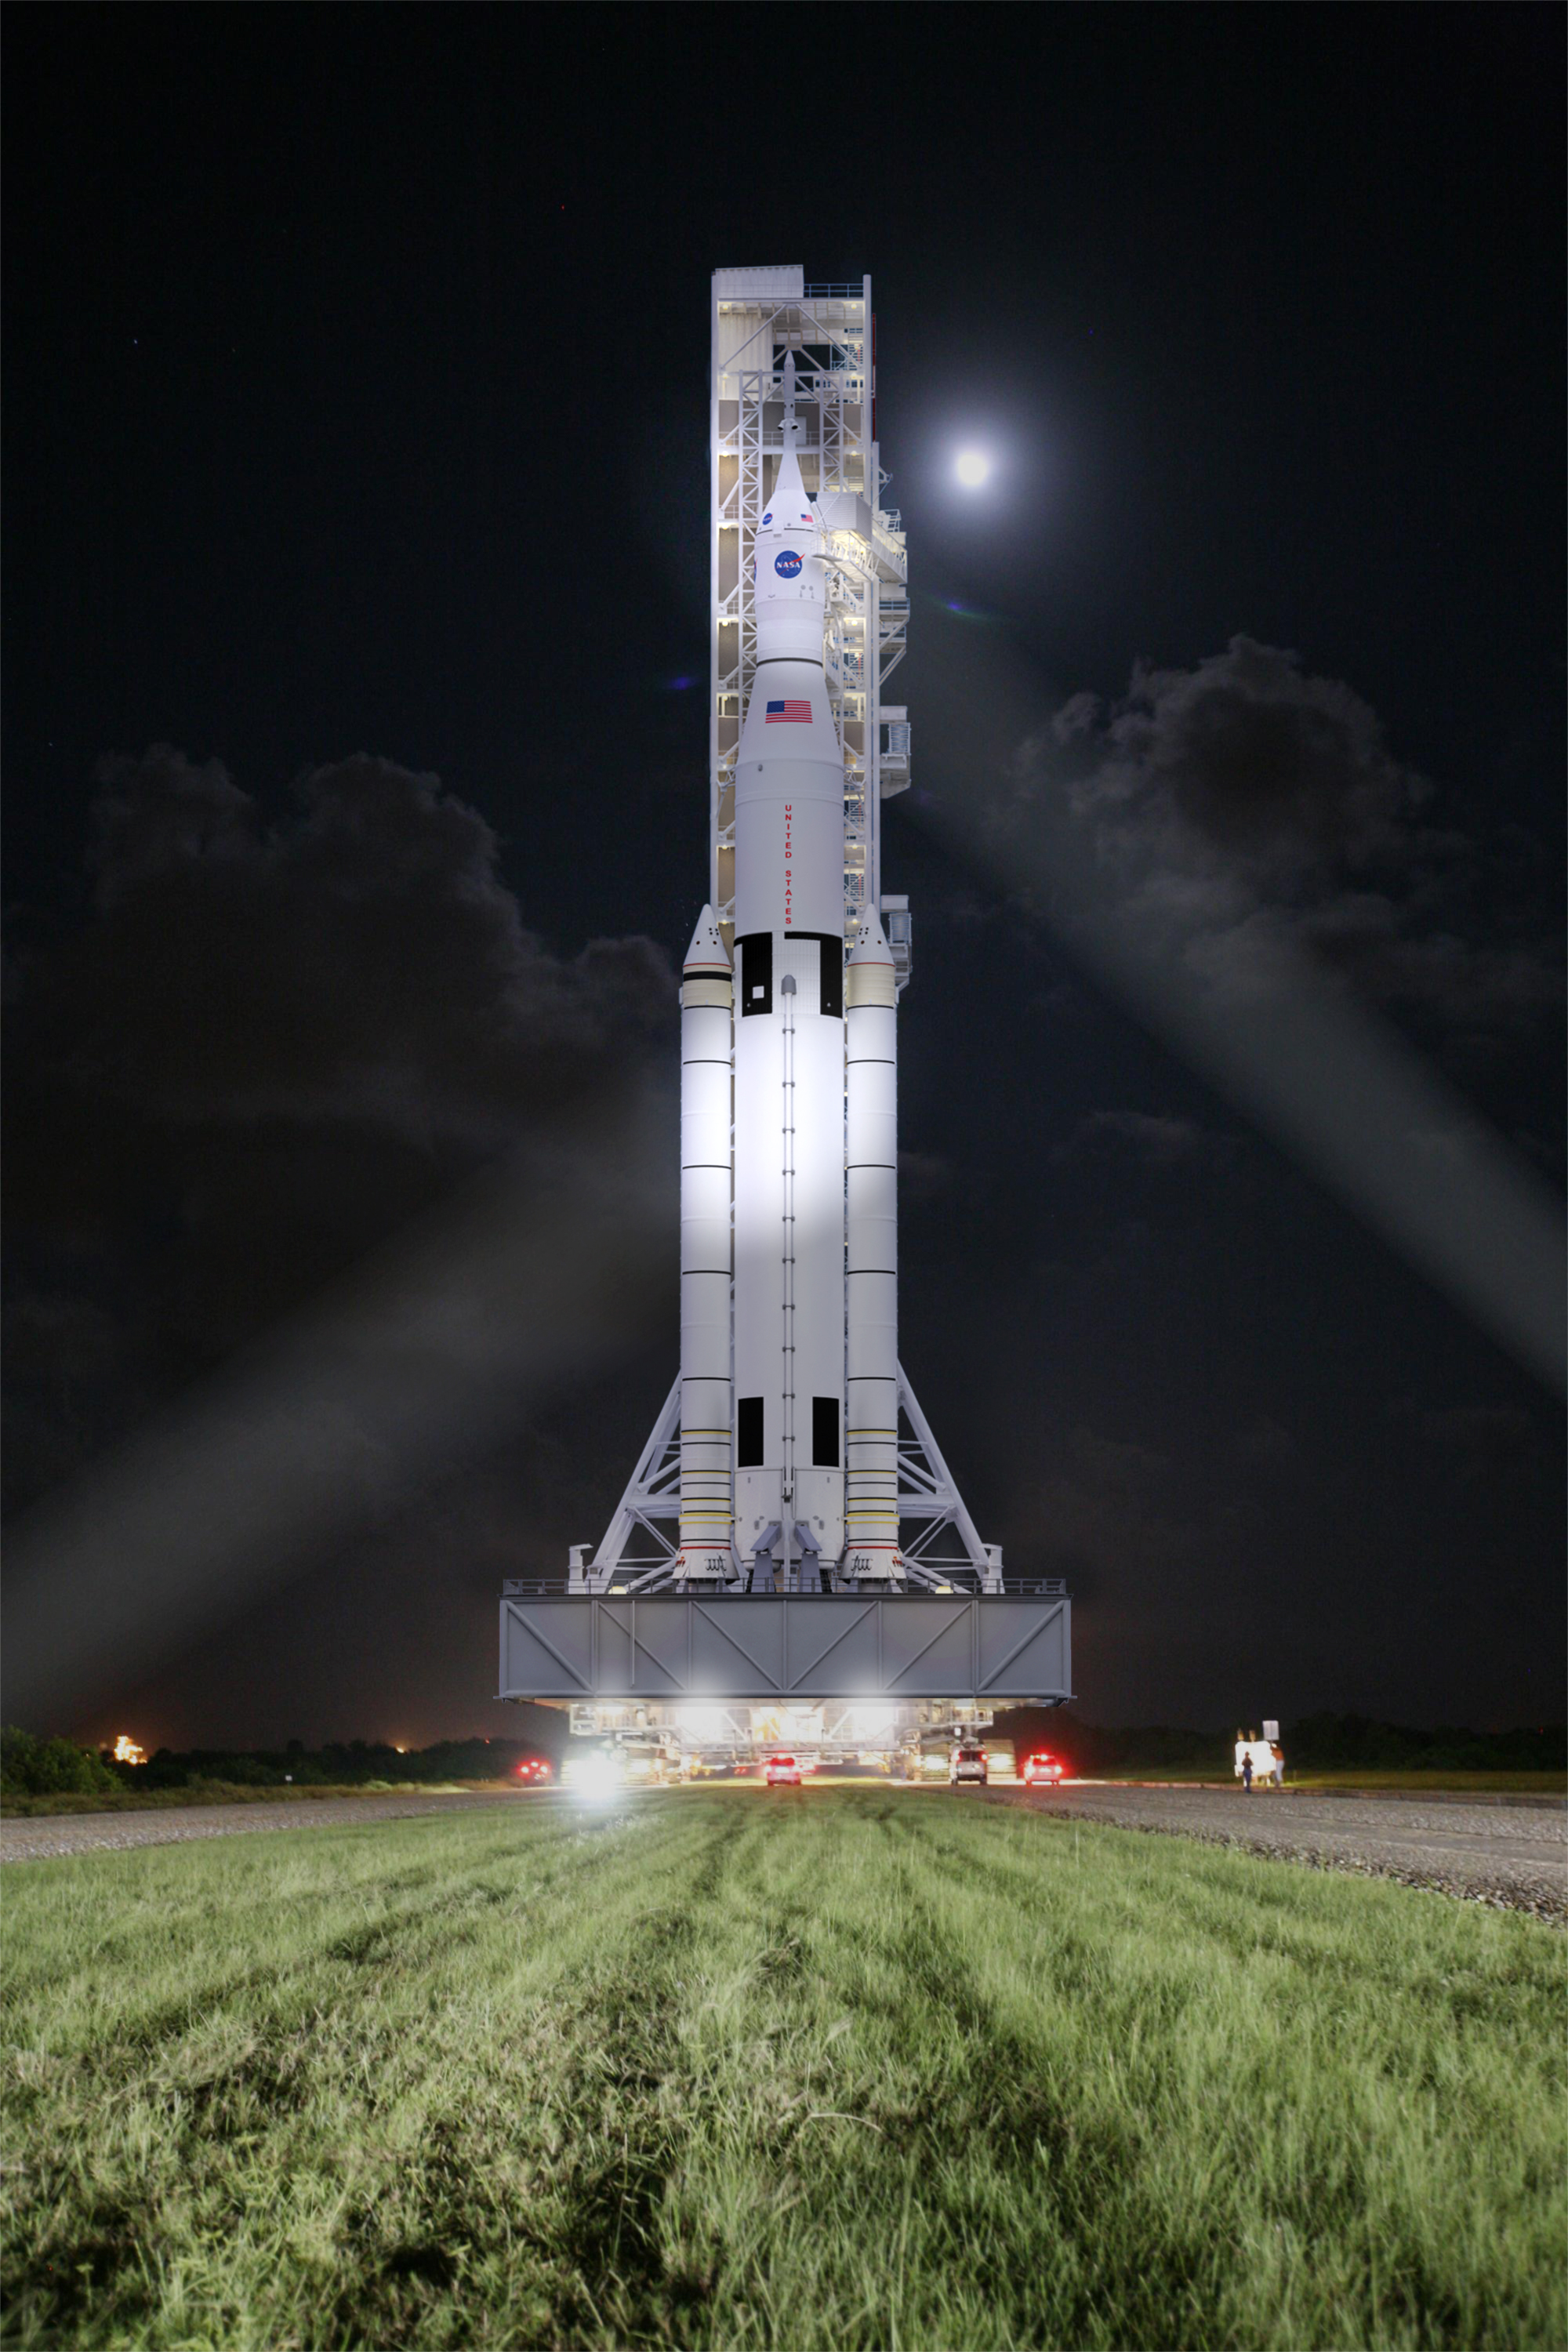 This artist concept shows NASA's Space Launch System, or SLS, rolling to a launchpad at Kennedy Space Center at night. SLS will be the most powerful rocket in history, and the flexible, evolvable design of this advanced, heavy-lift launch vehicle will meet a variety of crew and cargo mission needs. Image Credit: NASA/MSFC